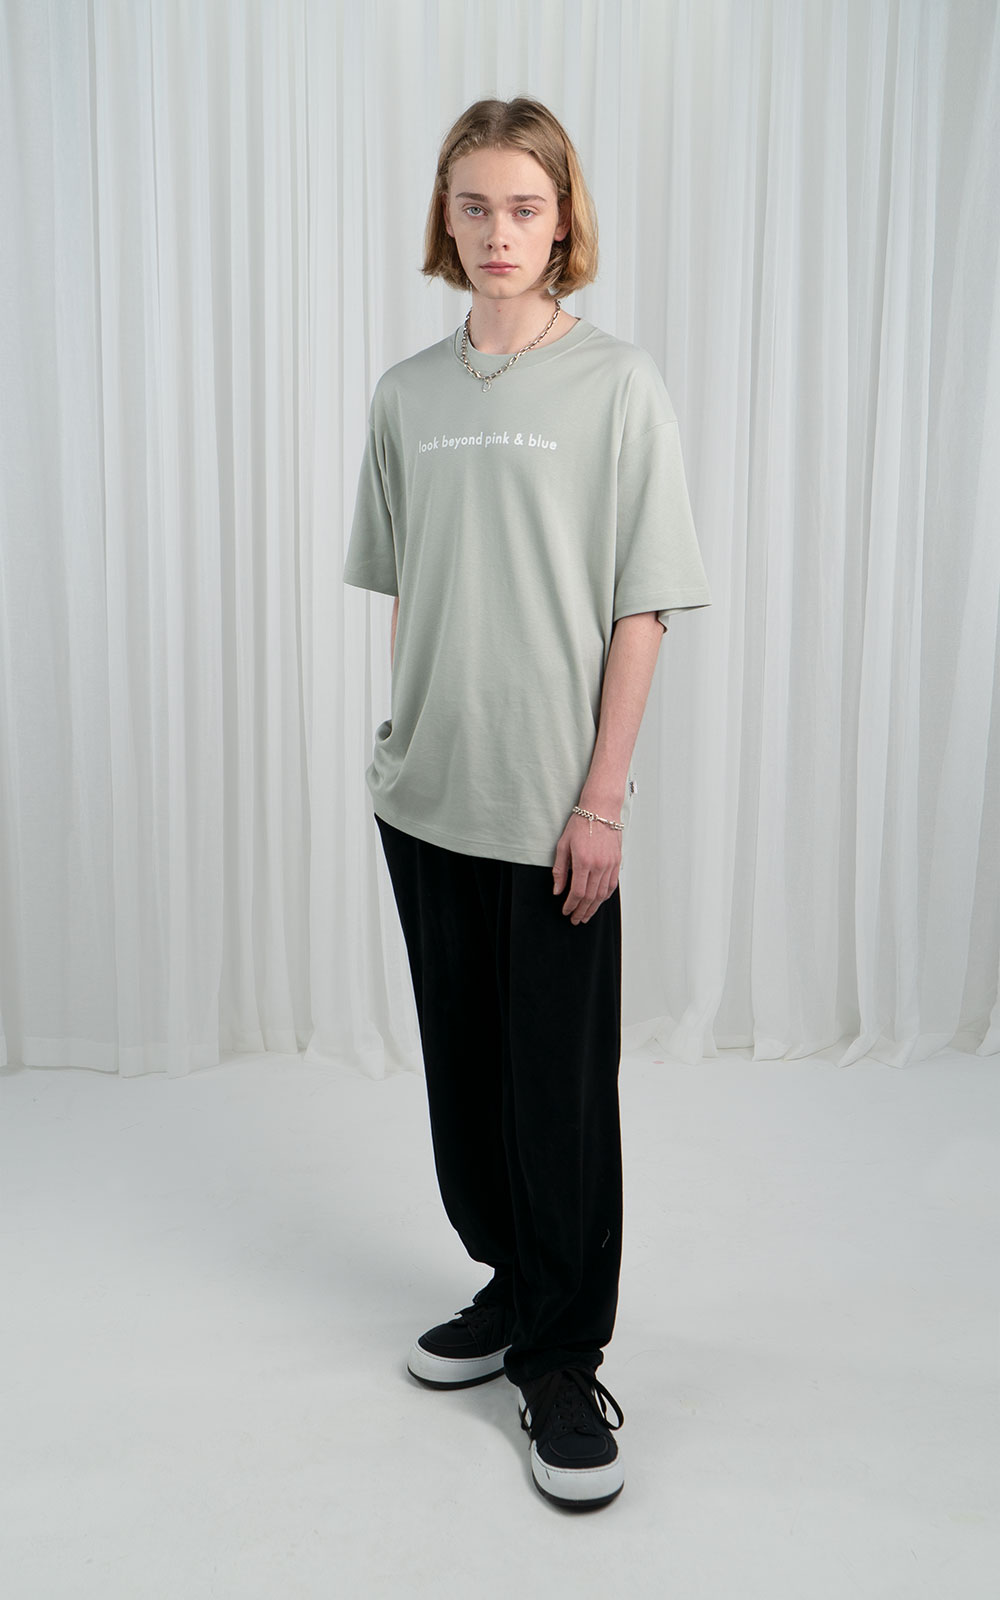 오디지 온라인 스토어LOOK BEYOND PINK&BLUE T-SHIRT_MINT GREYOwn label brand